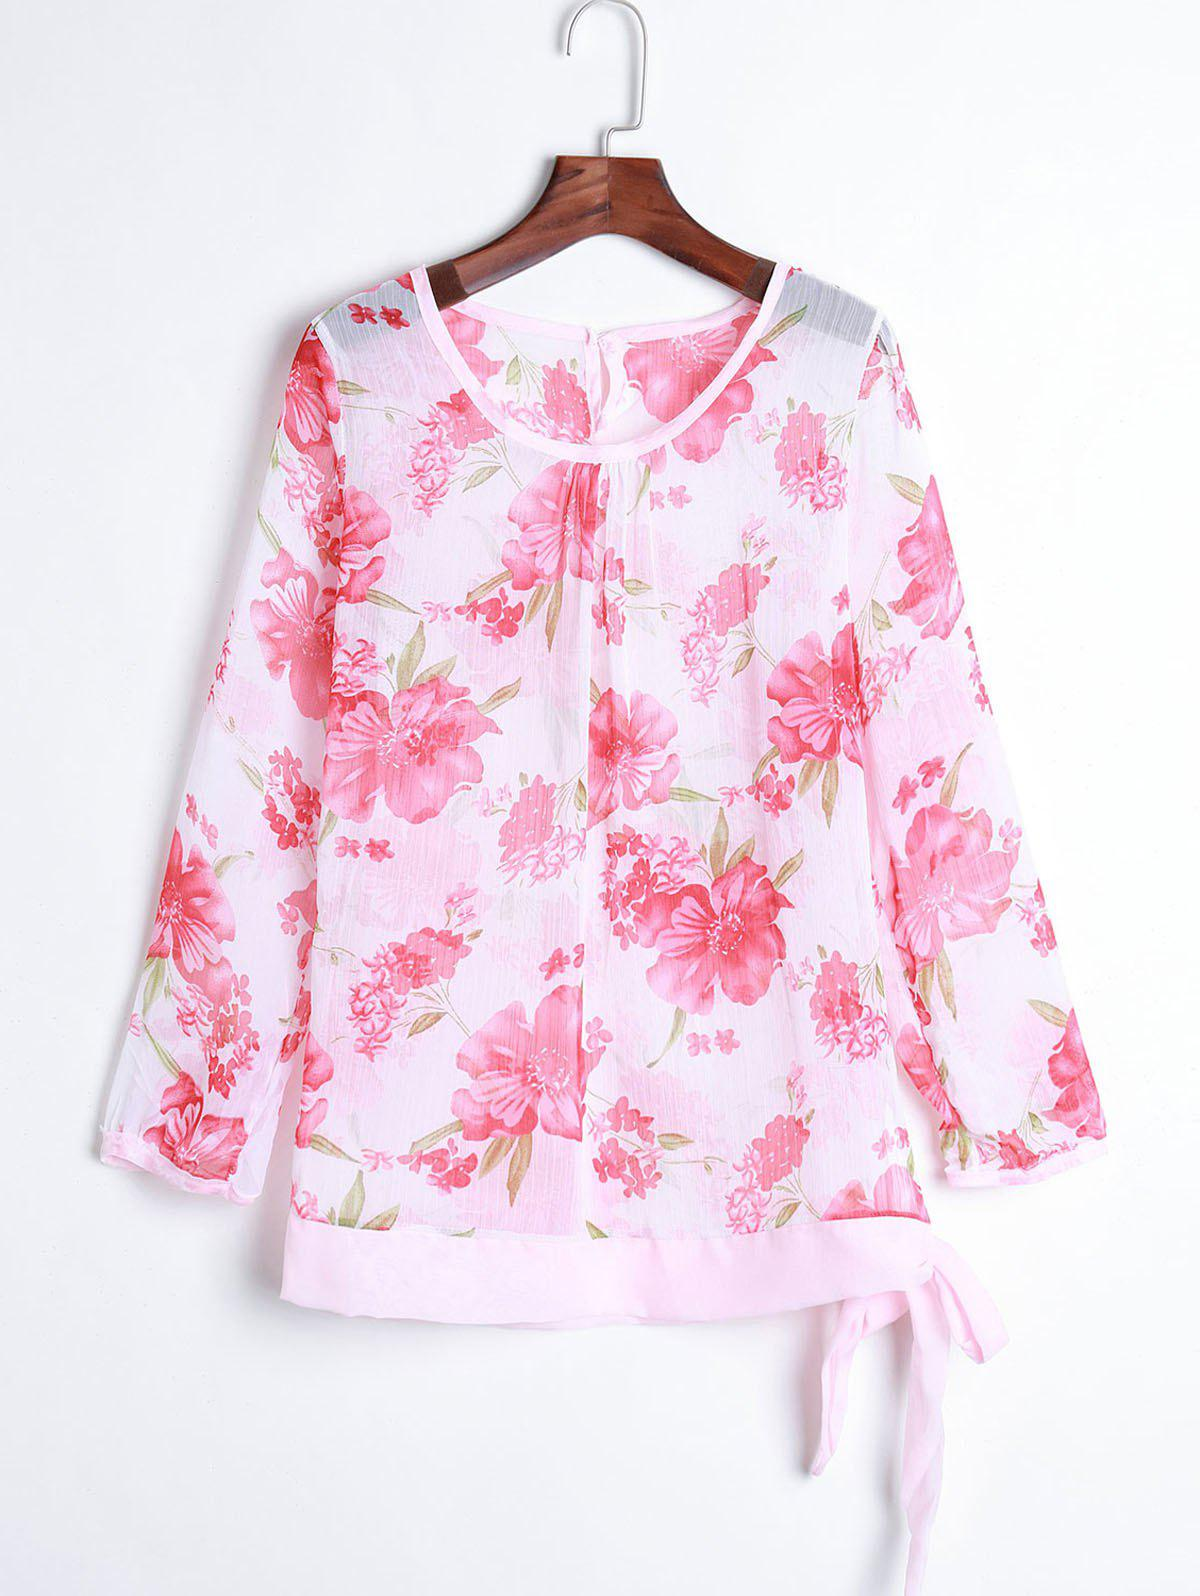 Women's Floral Print Pattern Chiffon Casual Puff Long Sleeve Tops Blouses Shirt - RED ONE SIZE